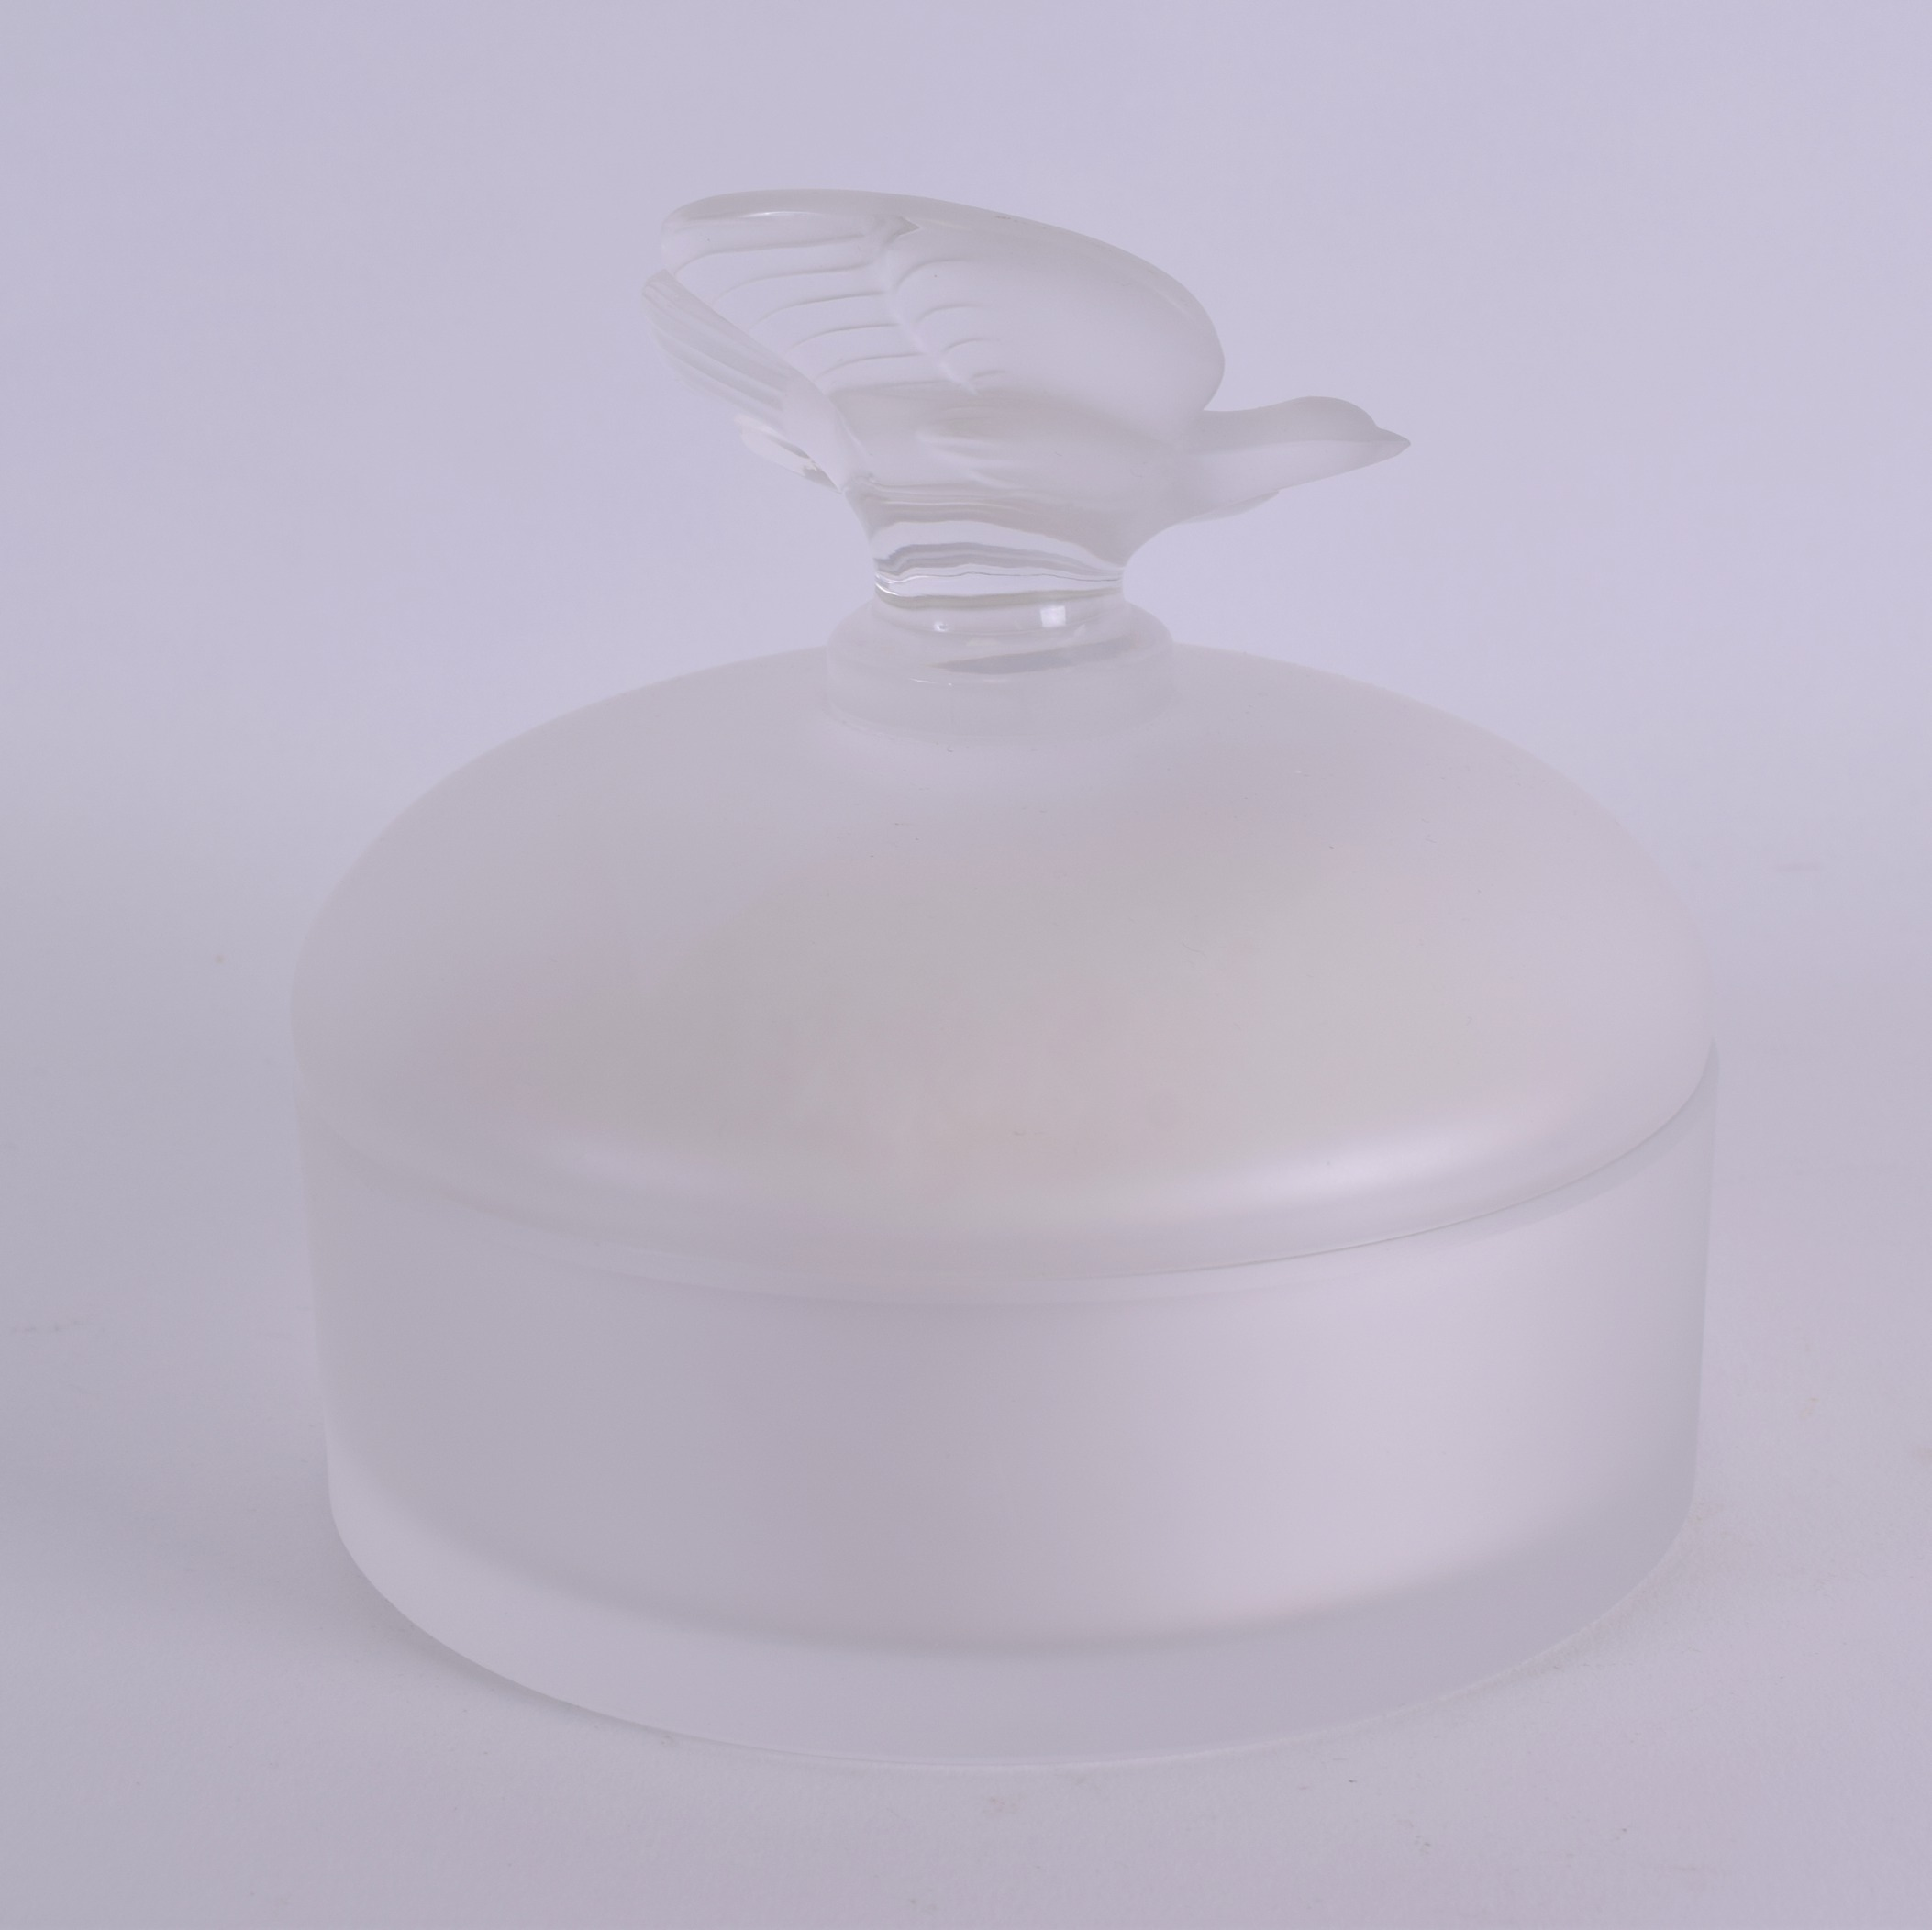 Lot 2 - A FRENCH LALIQUE NINA RITCHIE GLASS BOX AND COVER the finial formed as a bird. 13 cm x 13 cm.